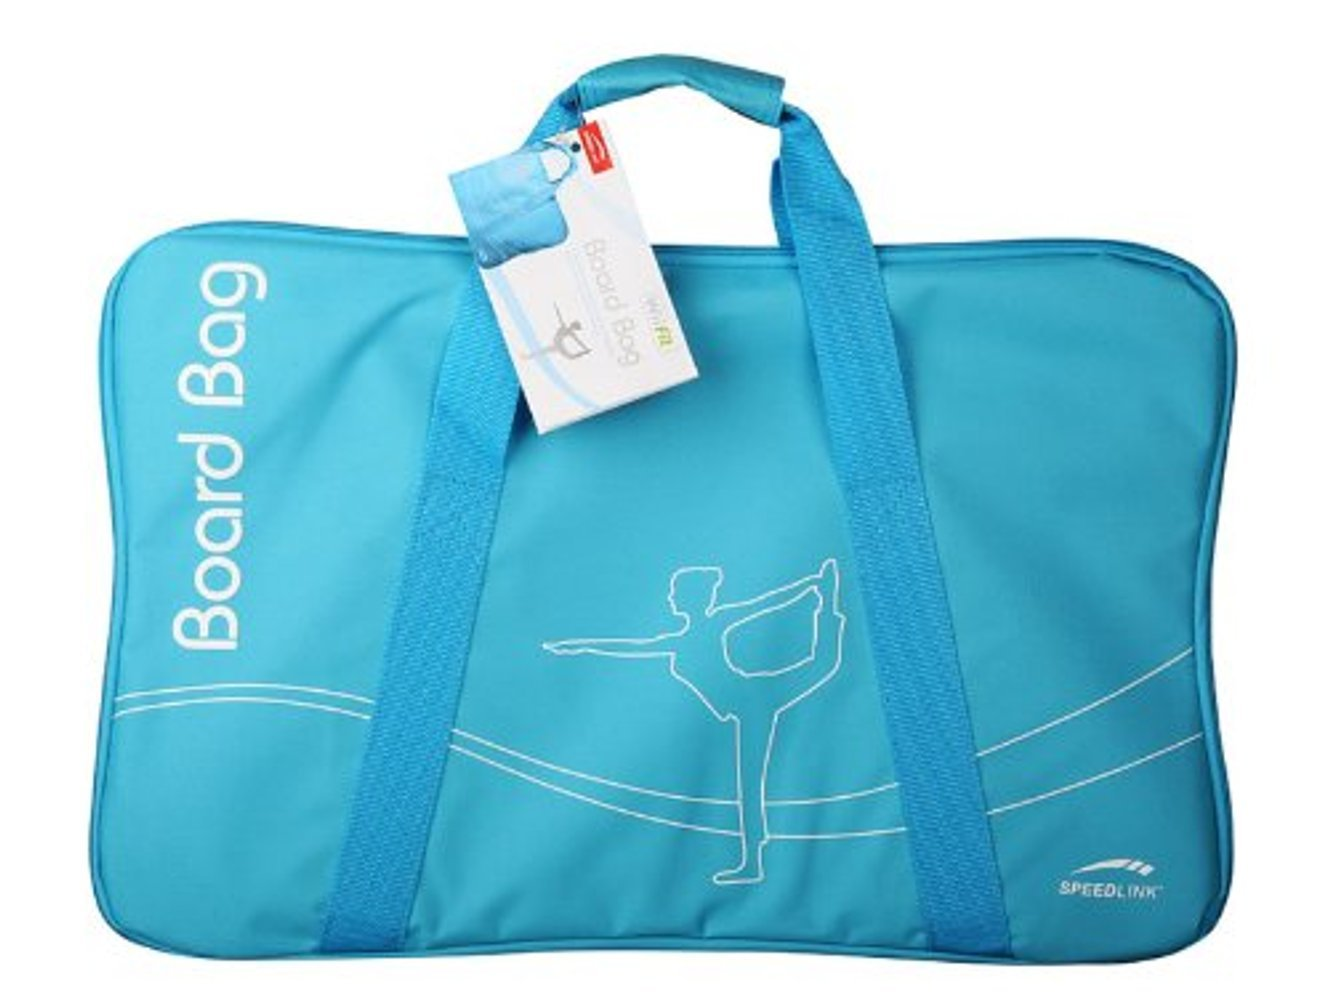 Speedlink Board Bag : Blue (WiiFit)